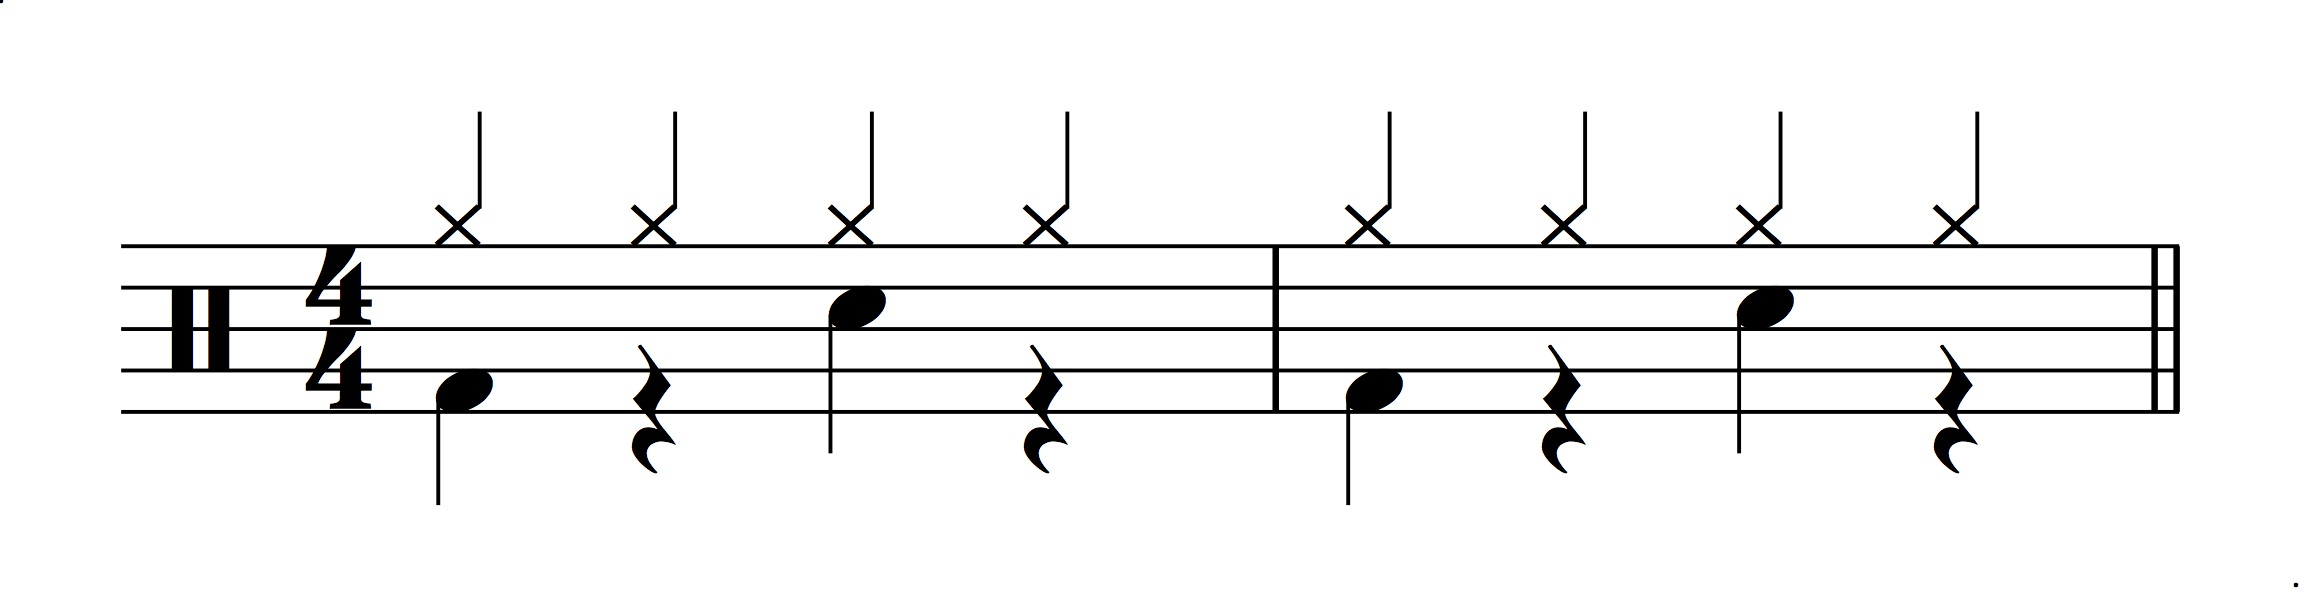 Figure 3.: Model for a half-time drum feel.